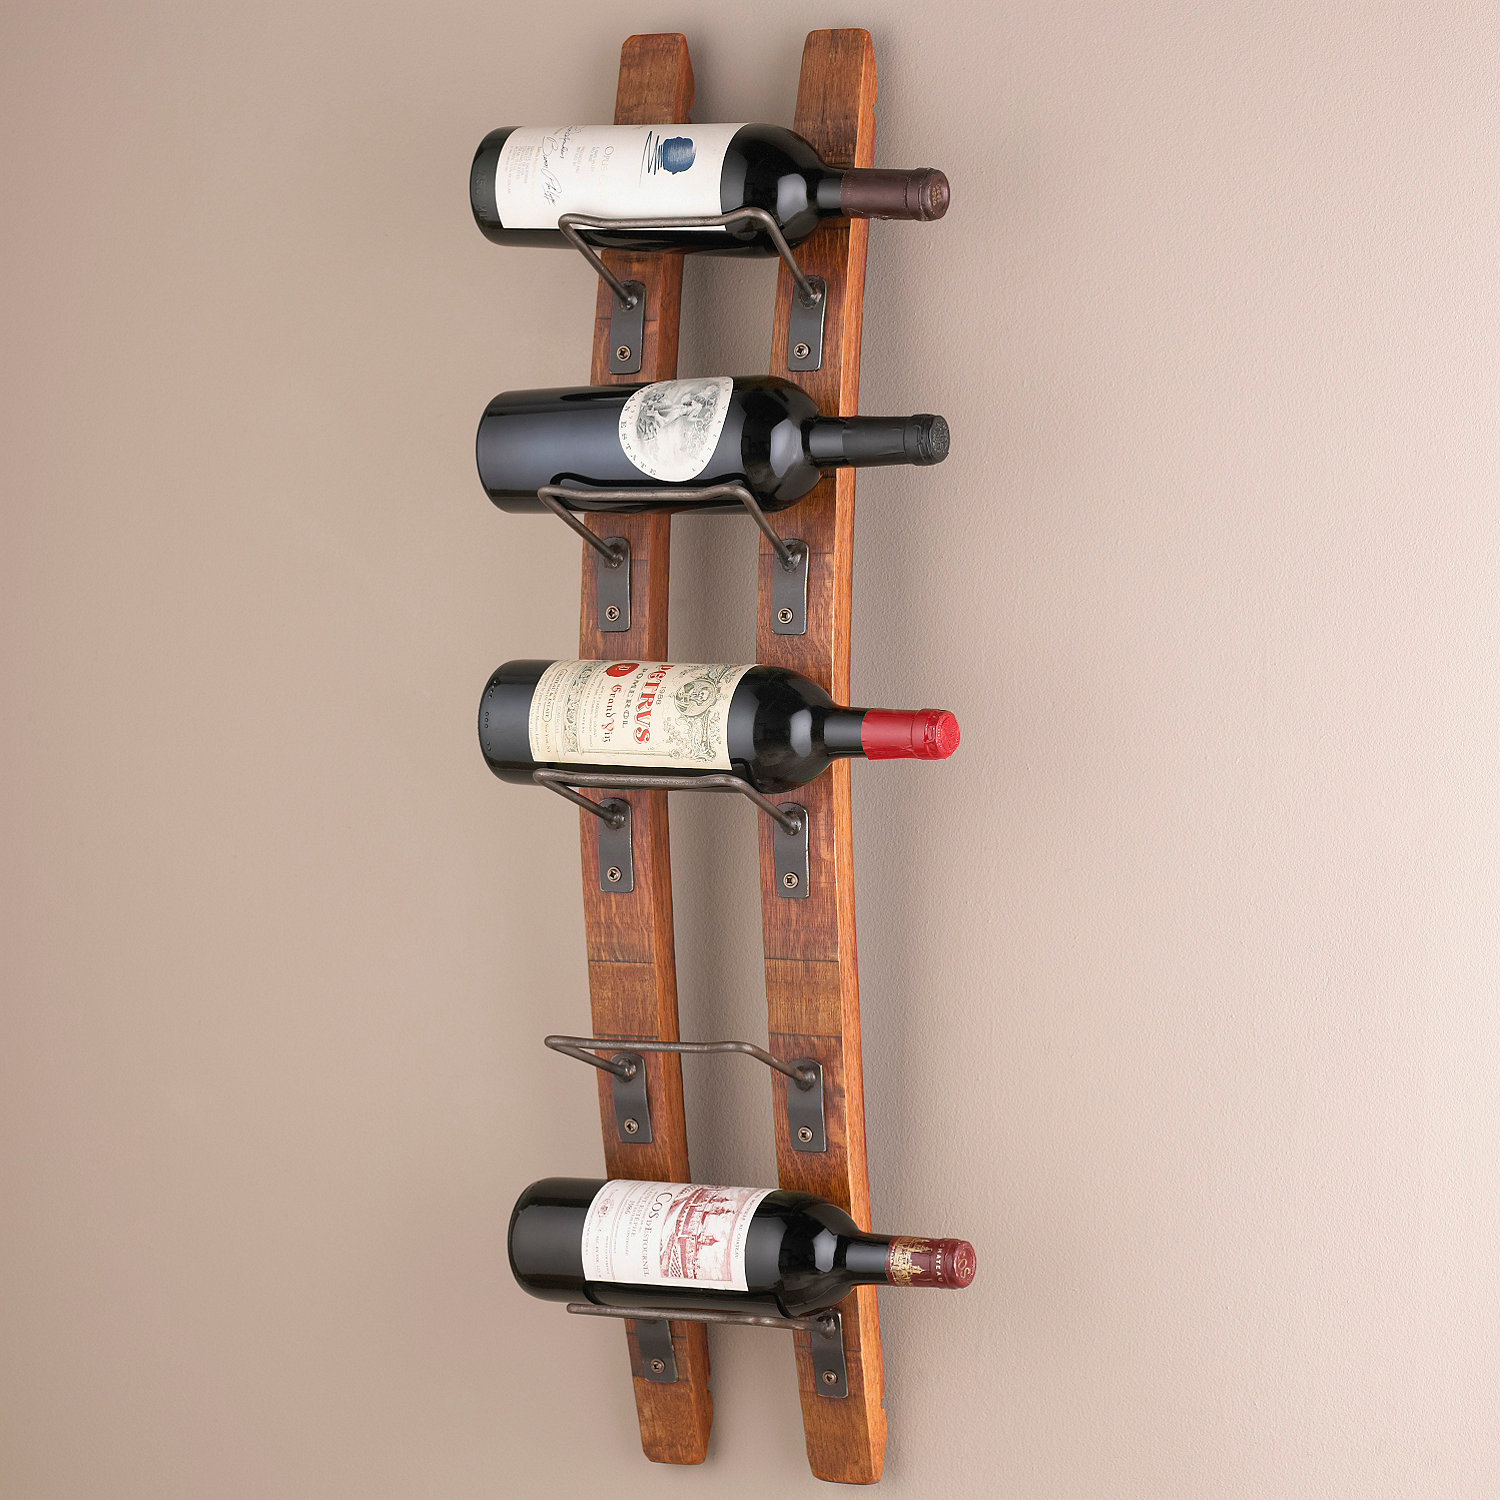 Wall Wine Shelves Wall Mounted Wine Rack Systems & Hanging Wine Racks  Wine Enthusiast